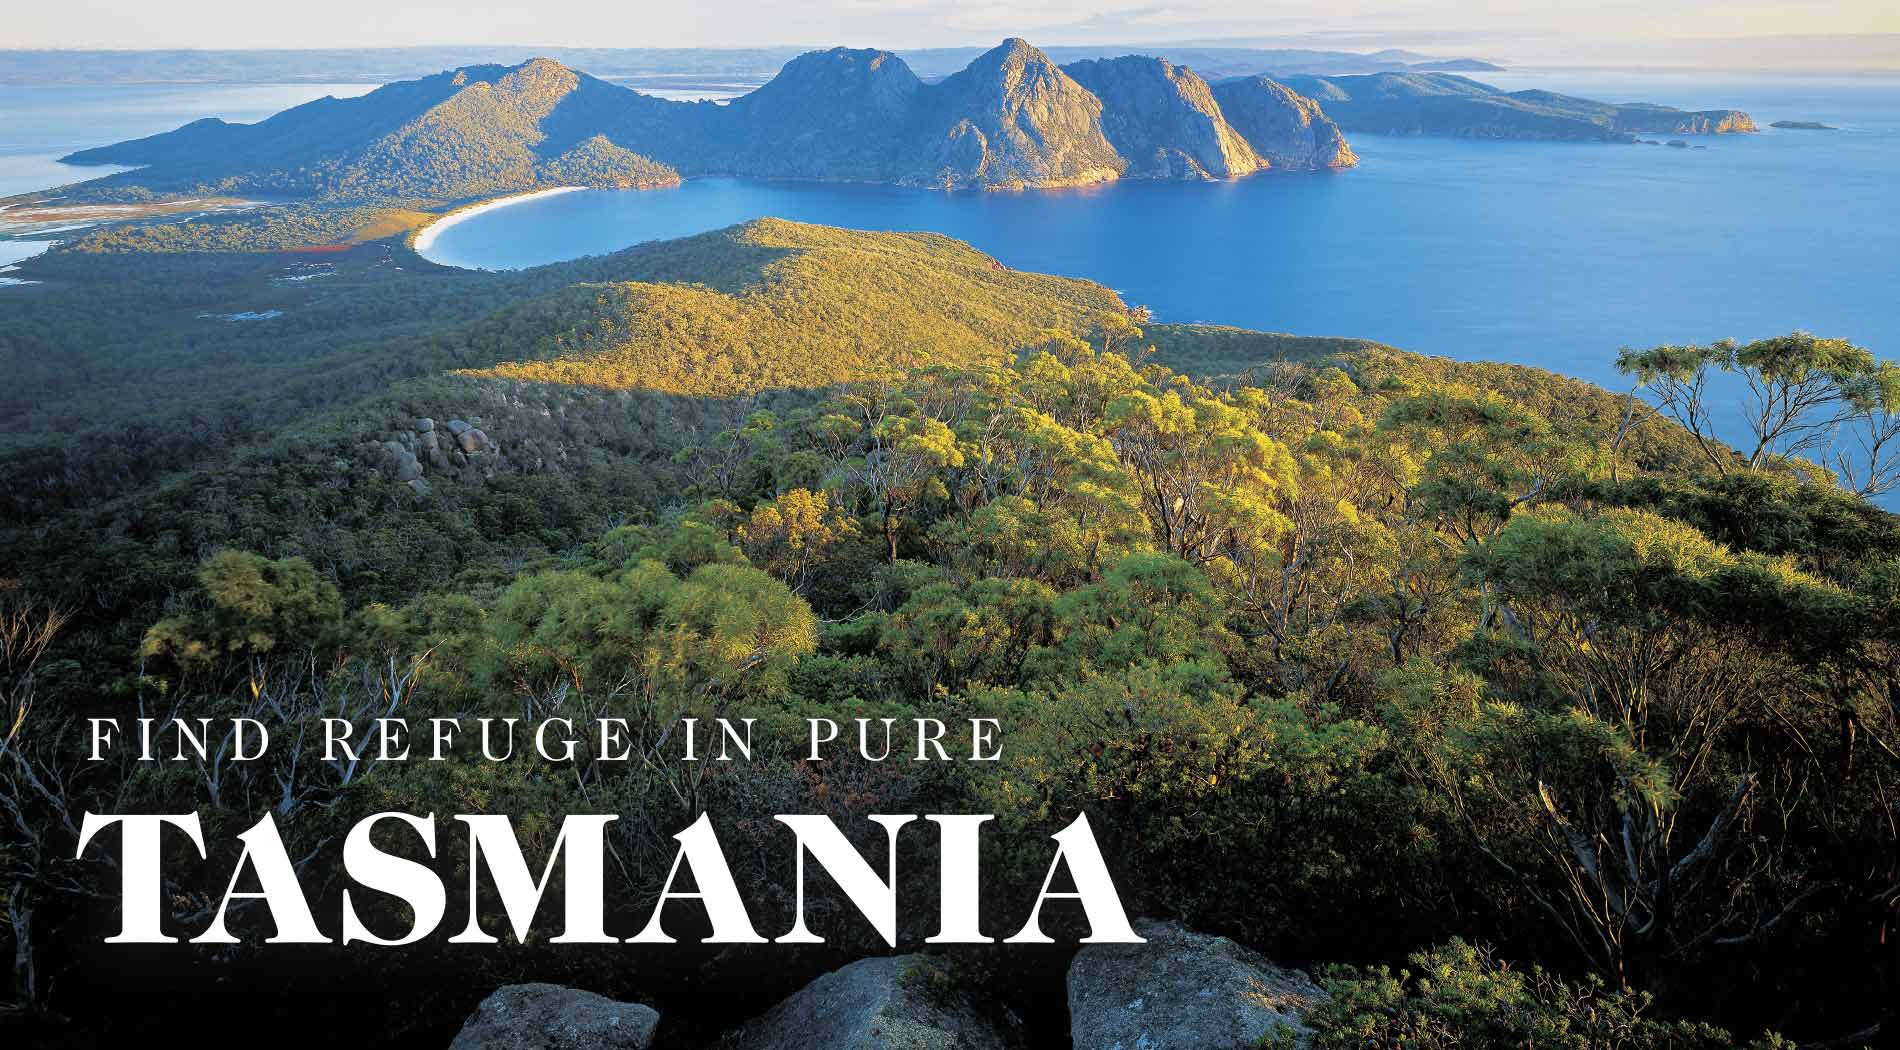 tasmania issue vie magazine